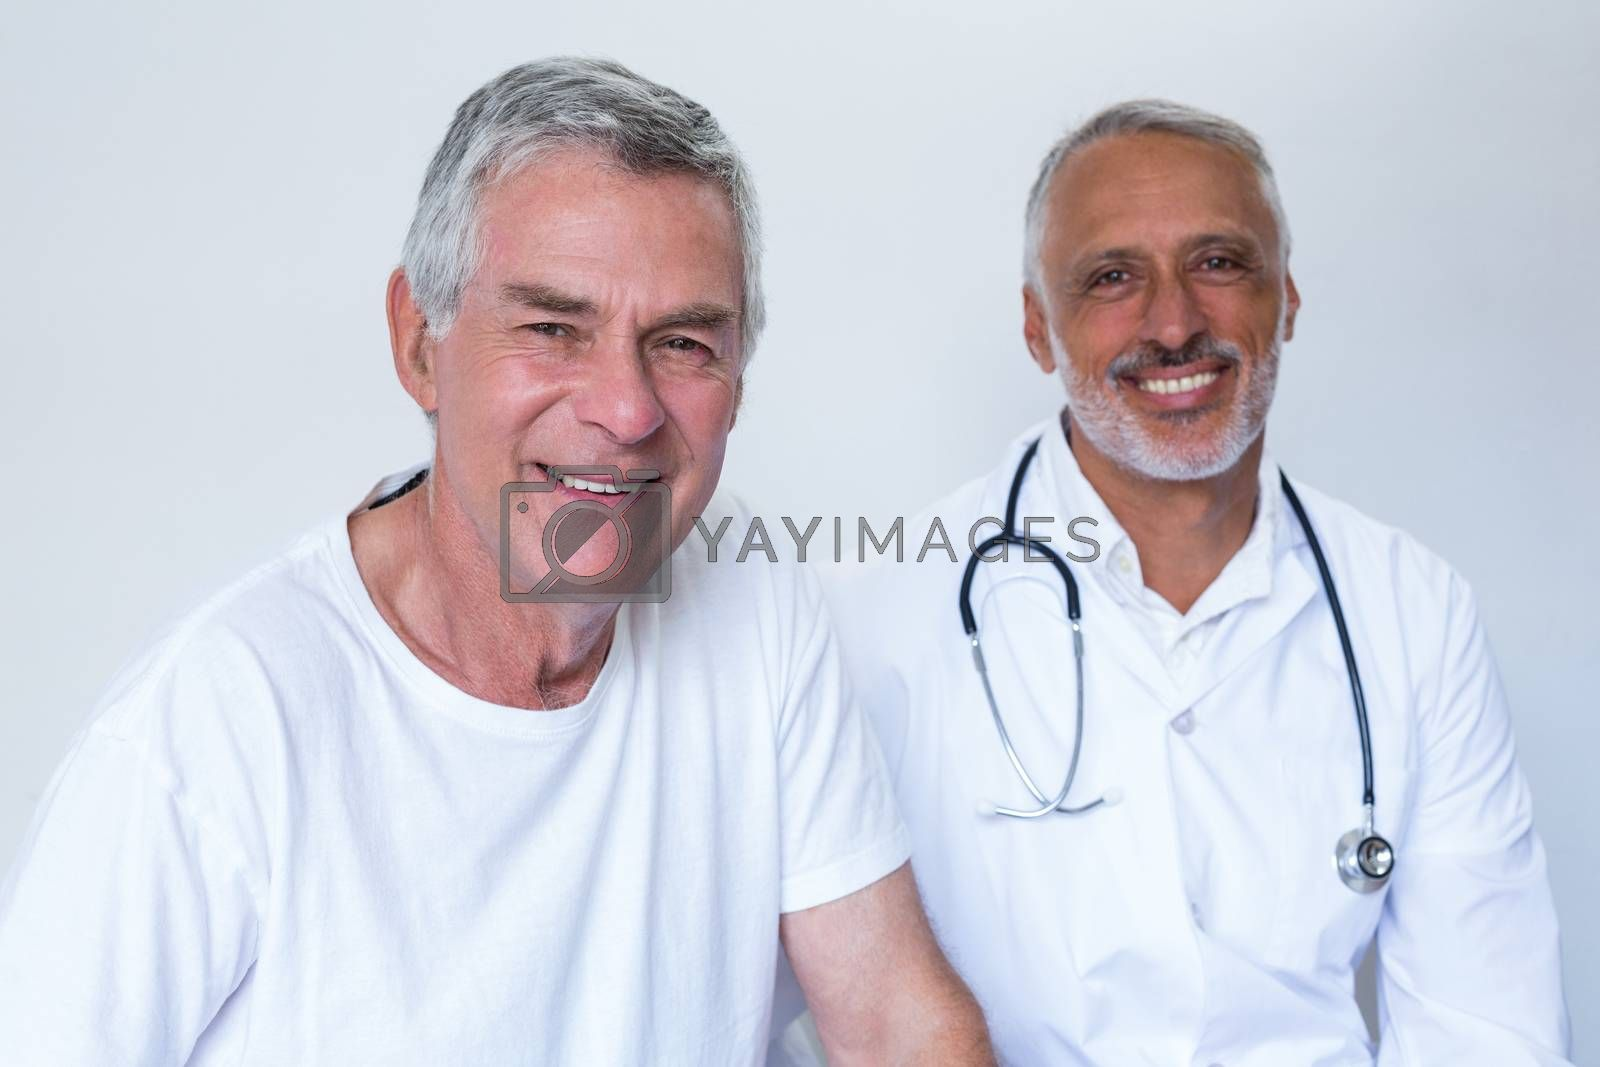 Royalty free image of Portrait of happy male doctor and senior man by Wavebreakmedia